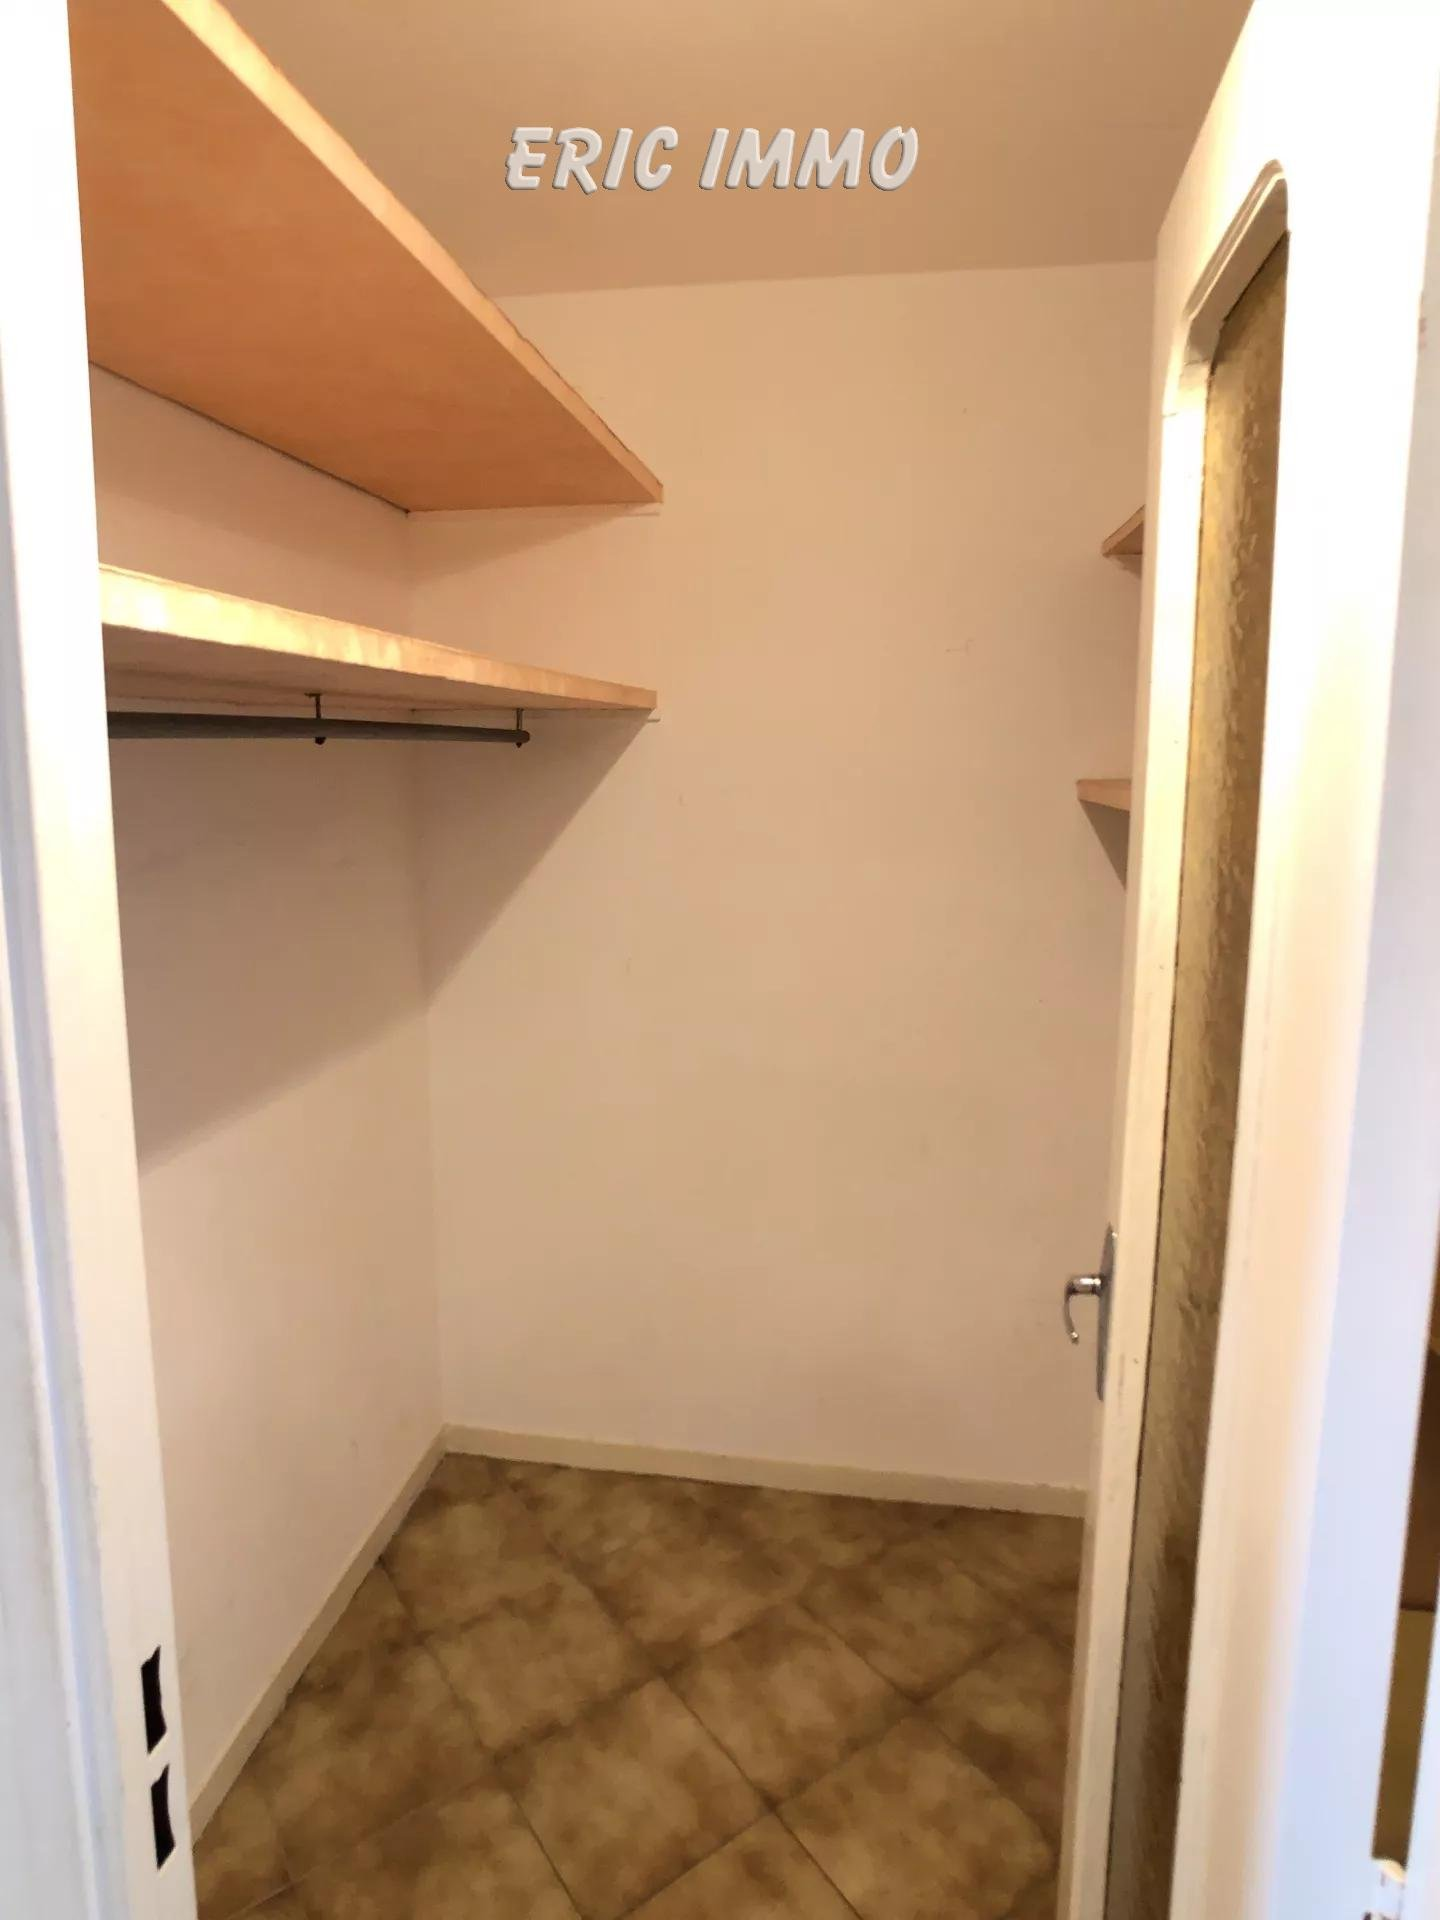 NICE OUEST / COSTIERE. 4 PIECES + CAVE + PARKING